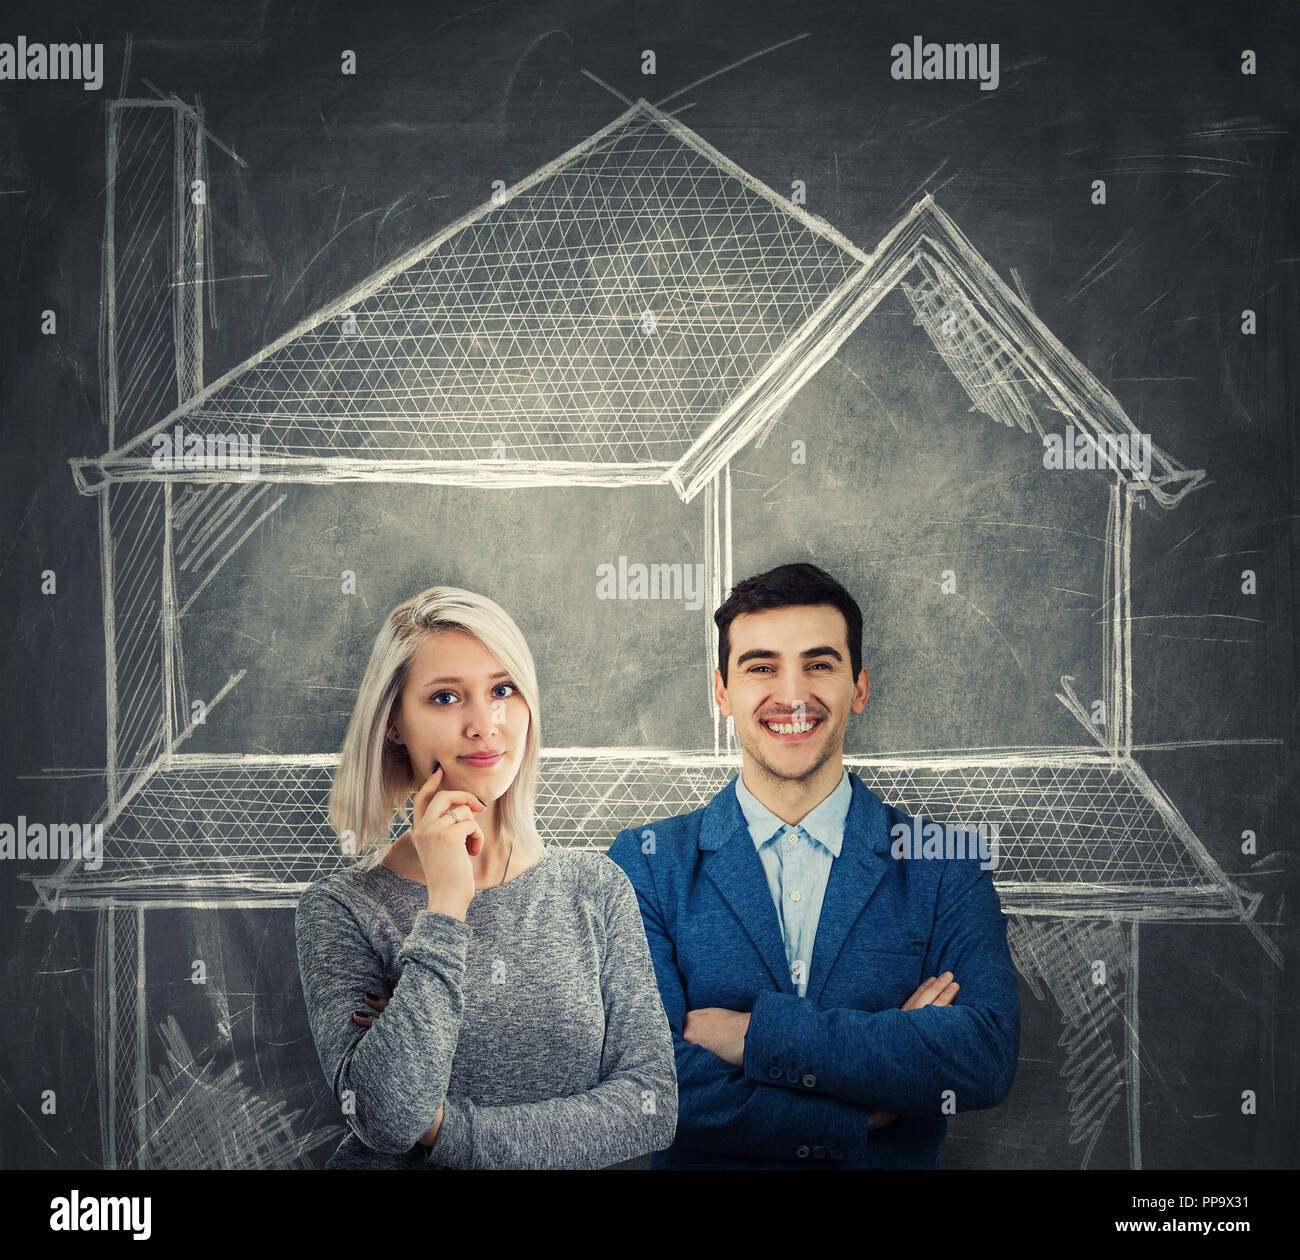 Young couple dreaming of own home, sharing thoughts together as a chalk house sketch drawn over blackboard. - Stock Image